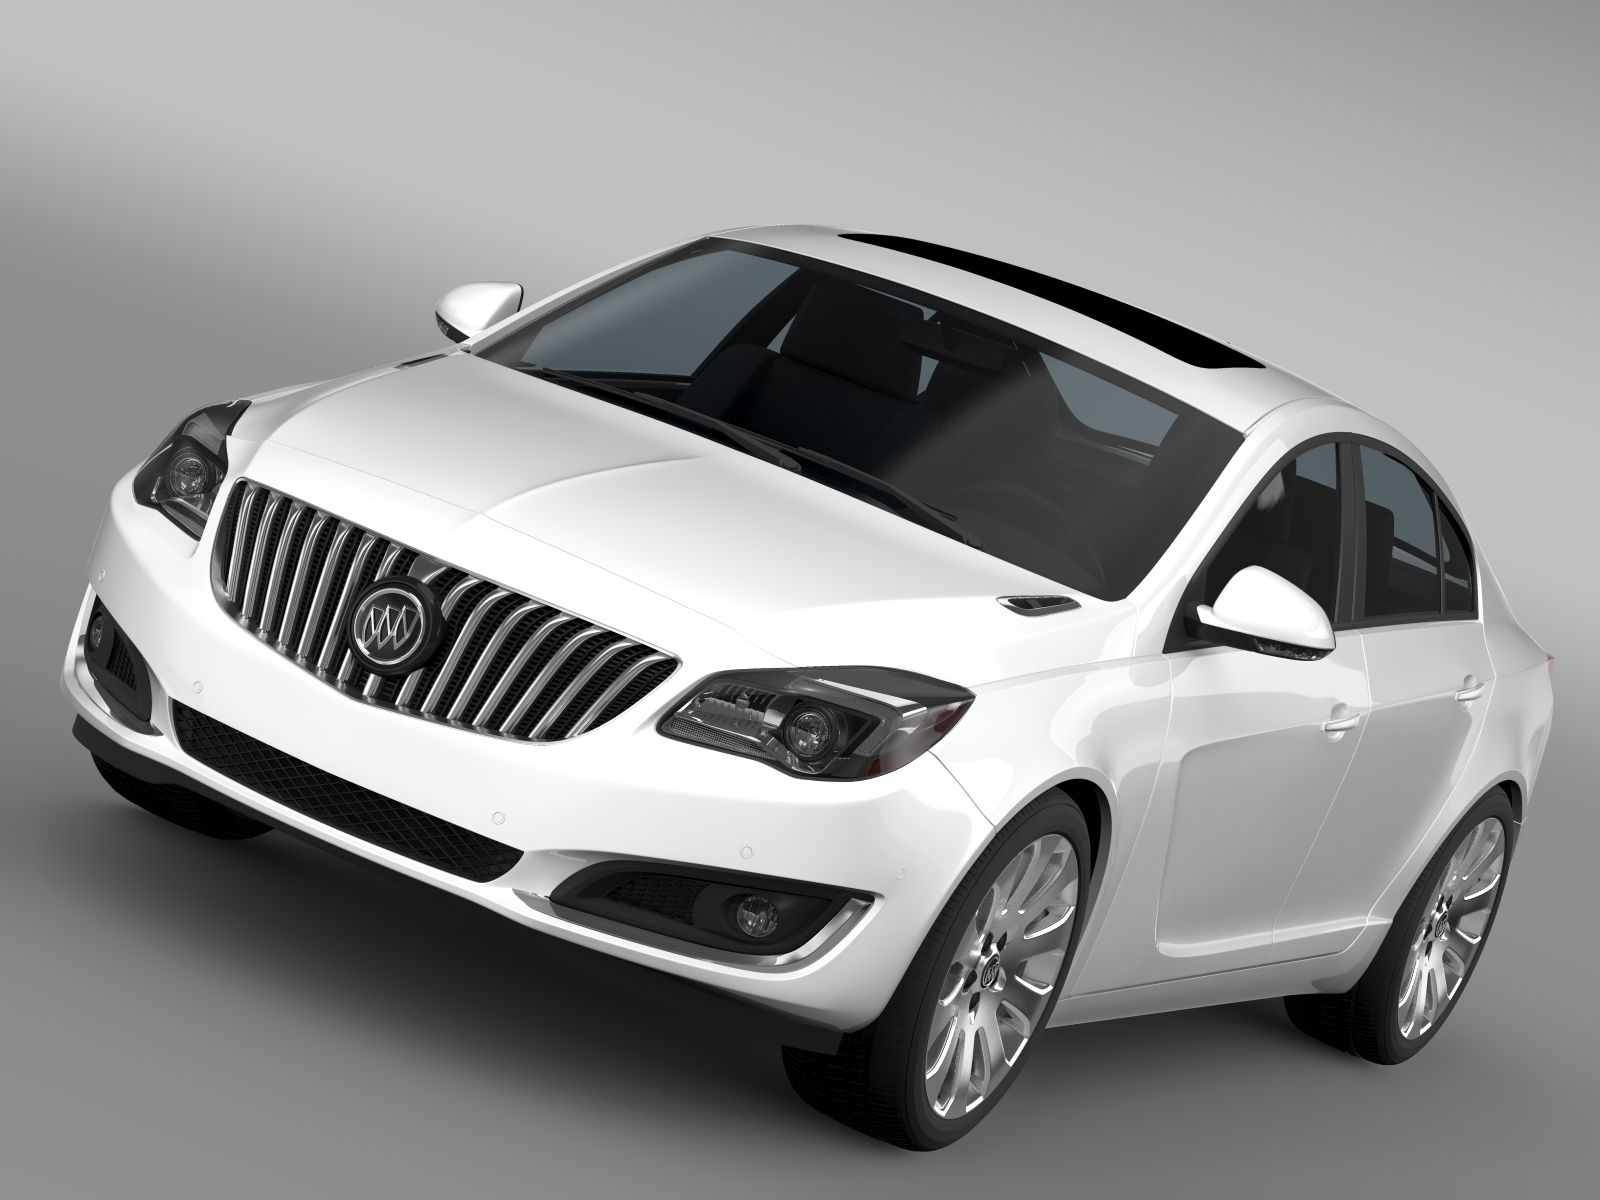 buick regal flexfuel 2015 3d model 3ds max fbx c4d lwo ma hr hr xsi obj 215176